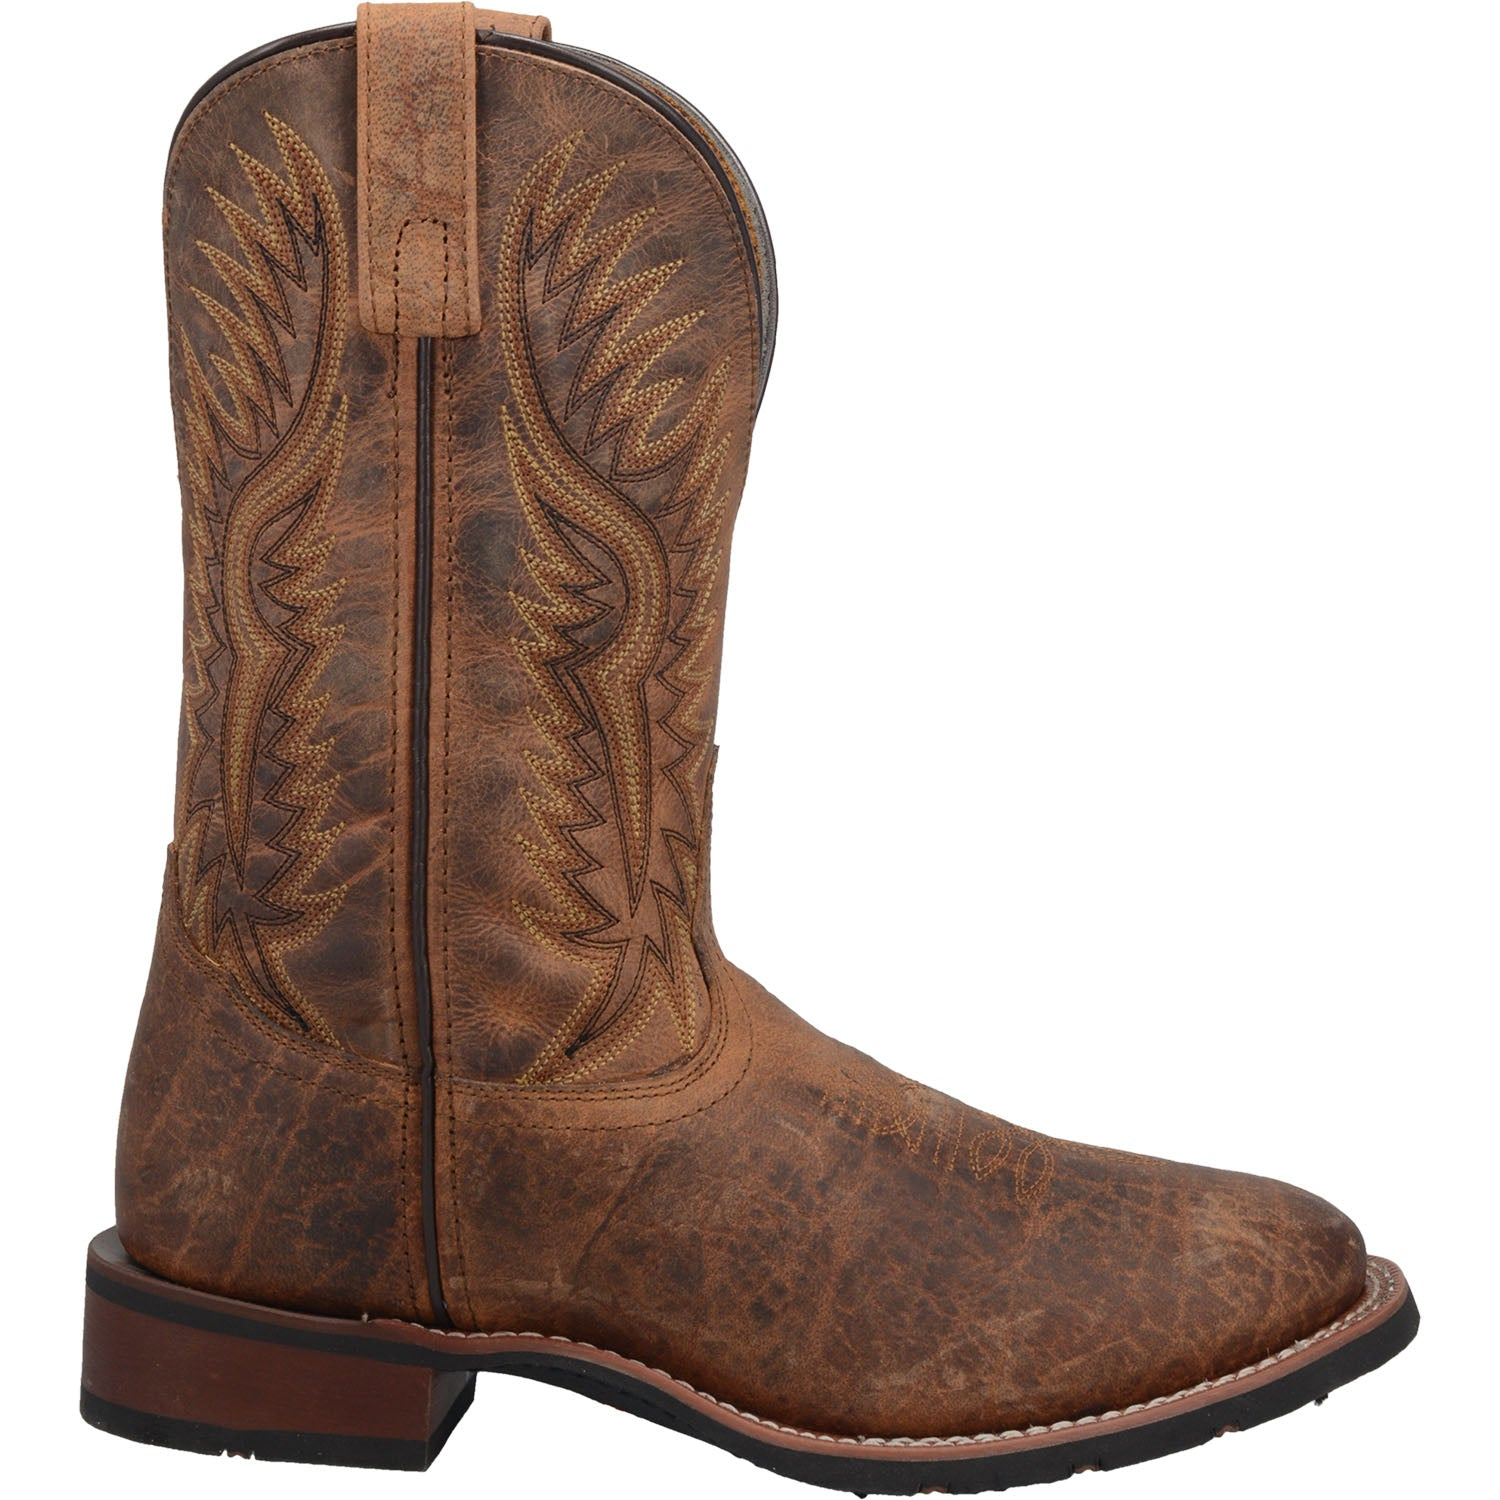 PINETOP LEATHER BOOT 15884489785386